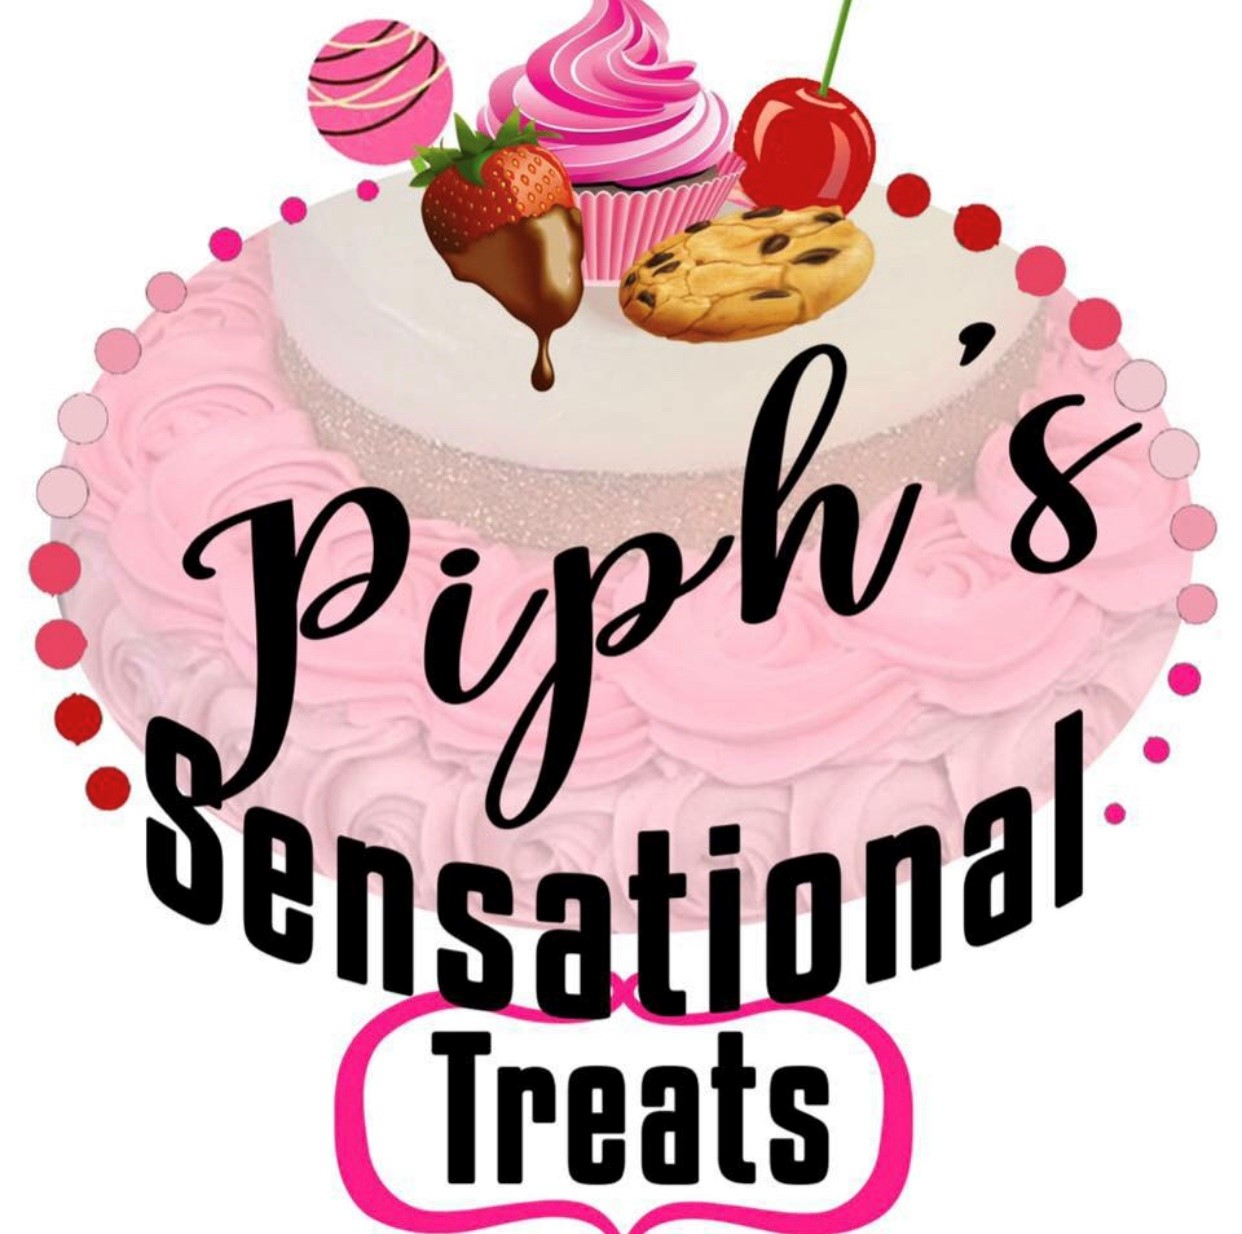 Piph's Sensational Treats.jpg